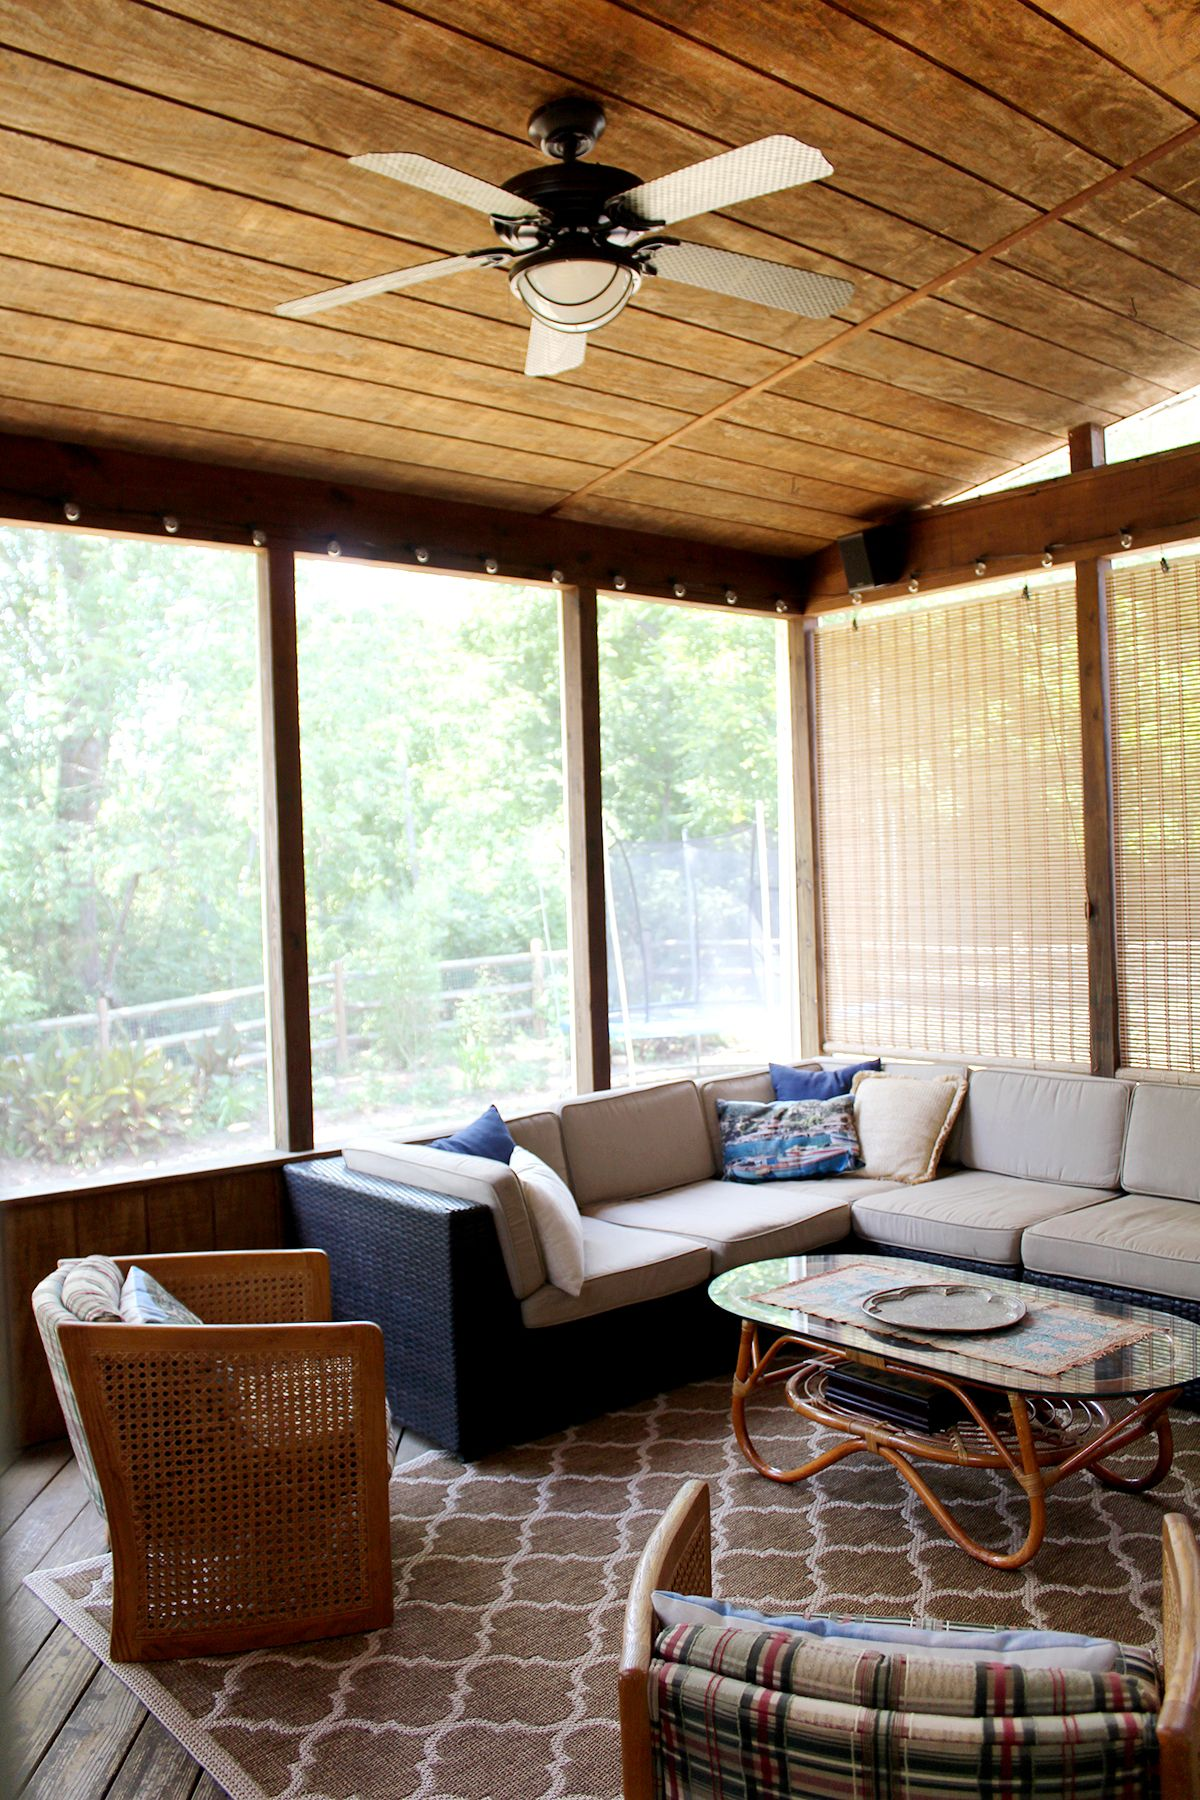 A Screened in Porch on a Budget | House with porch, Rustic ... on Outdoor Living Ideas On A Budget id=34001